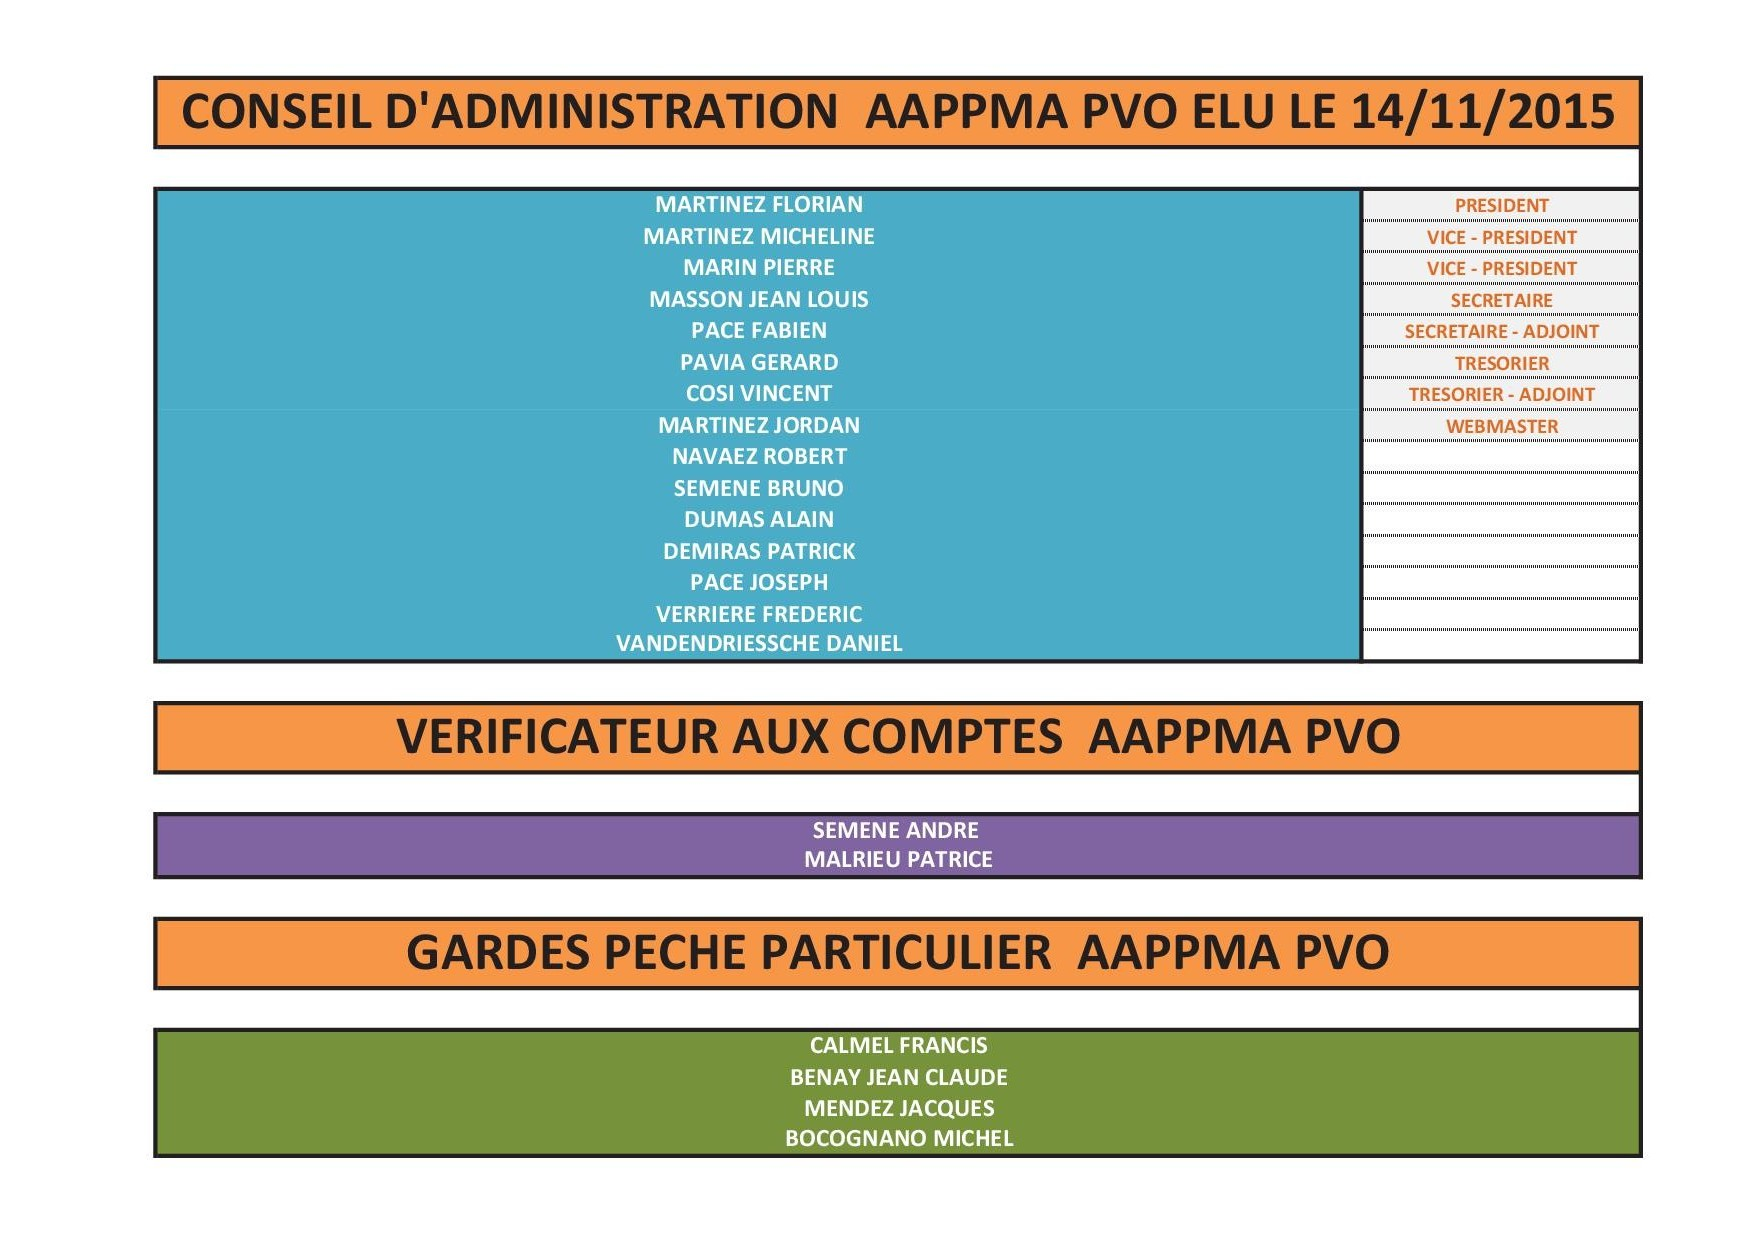 LISTING CONSEIL ADMINISTRATION ELECTION 2015